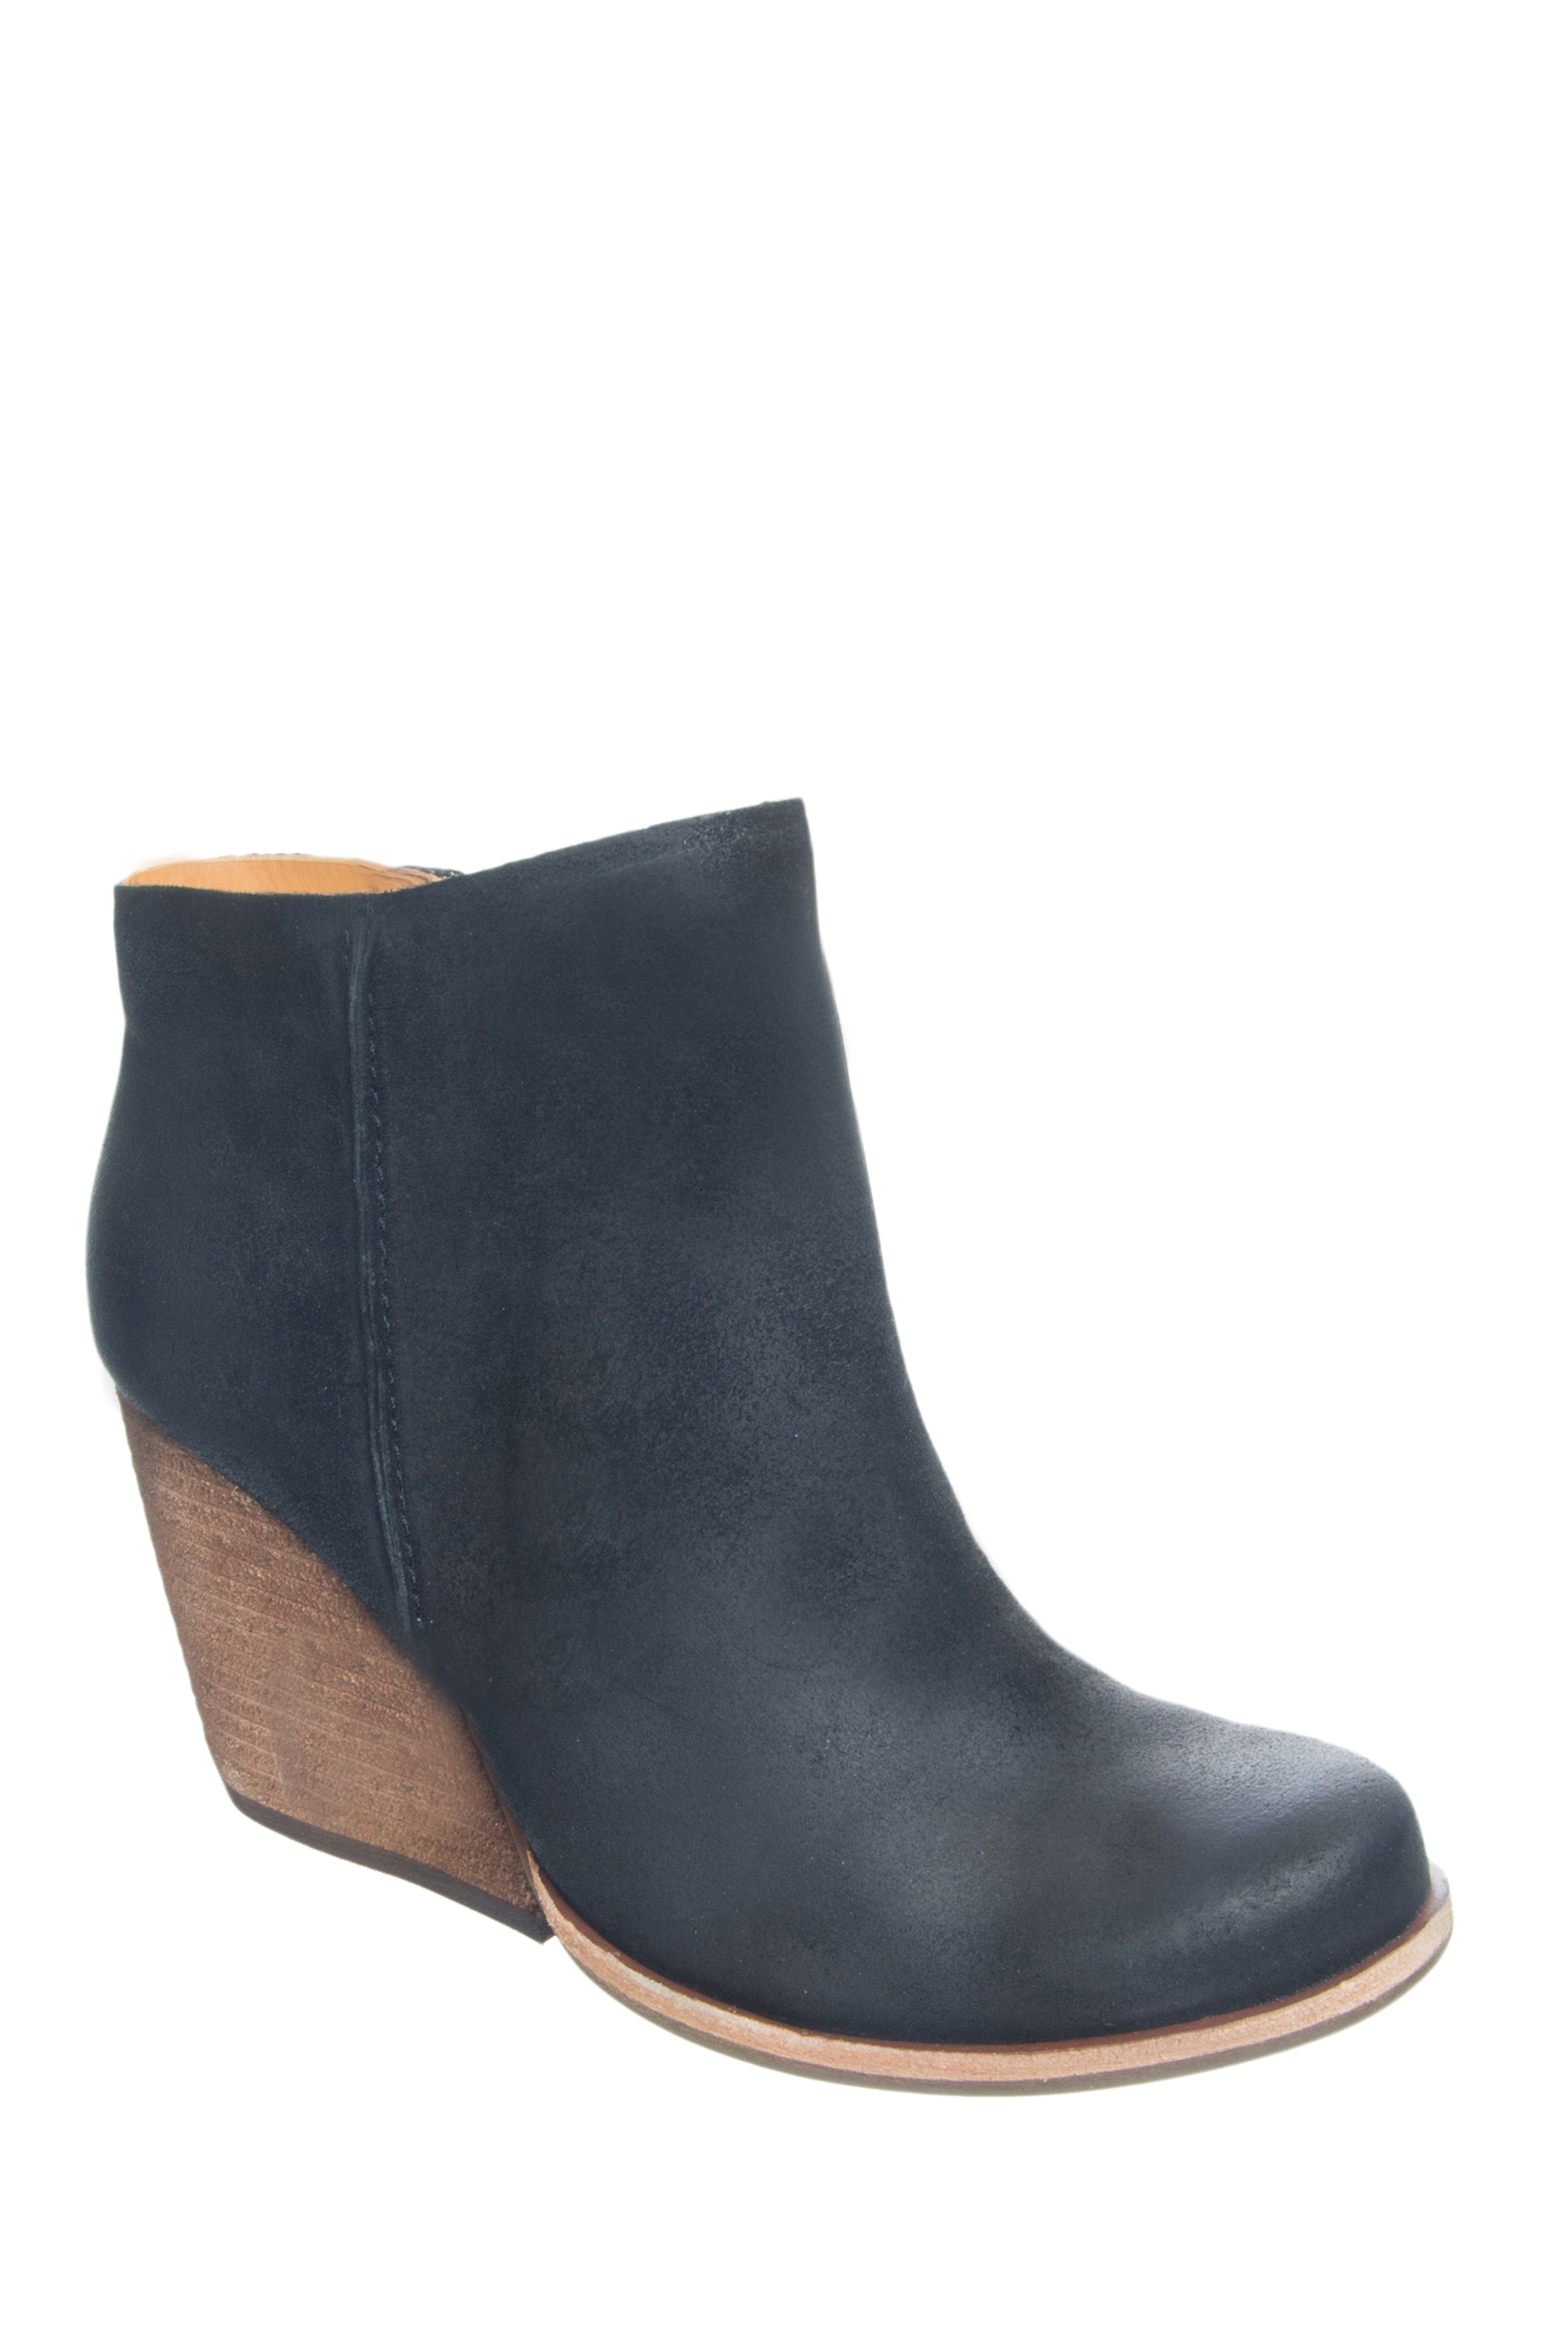 Kork-Ease Natalya High Heel Booties - Black